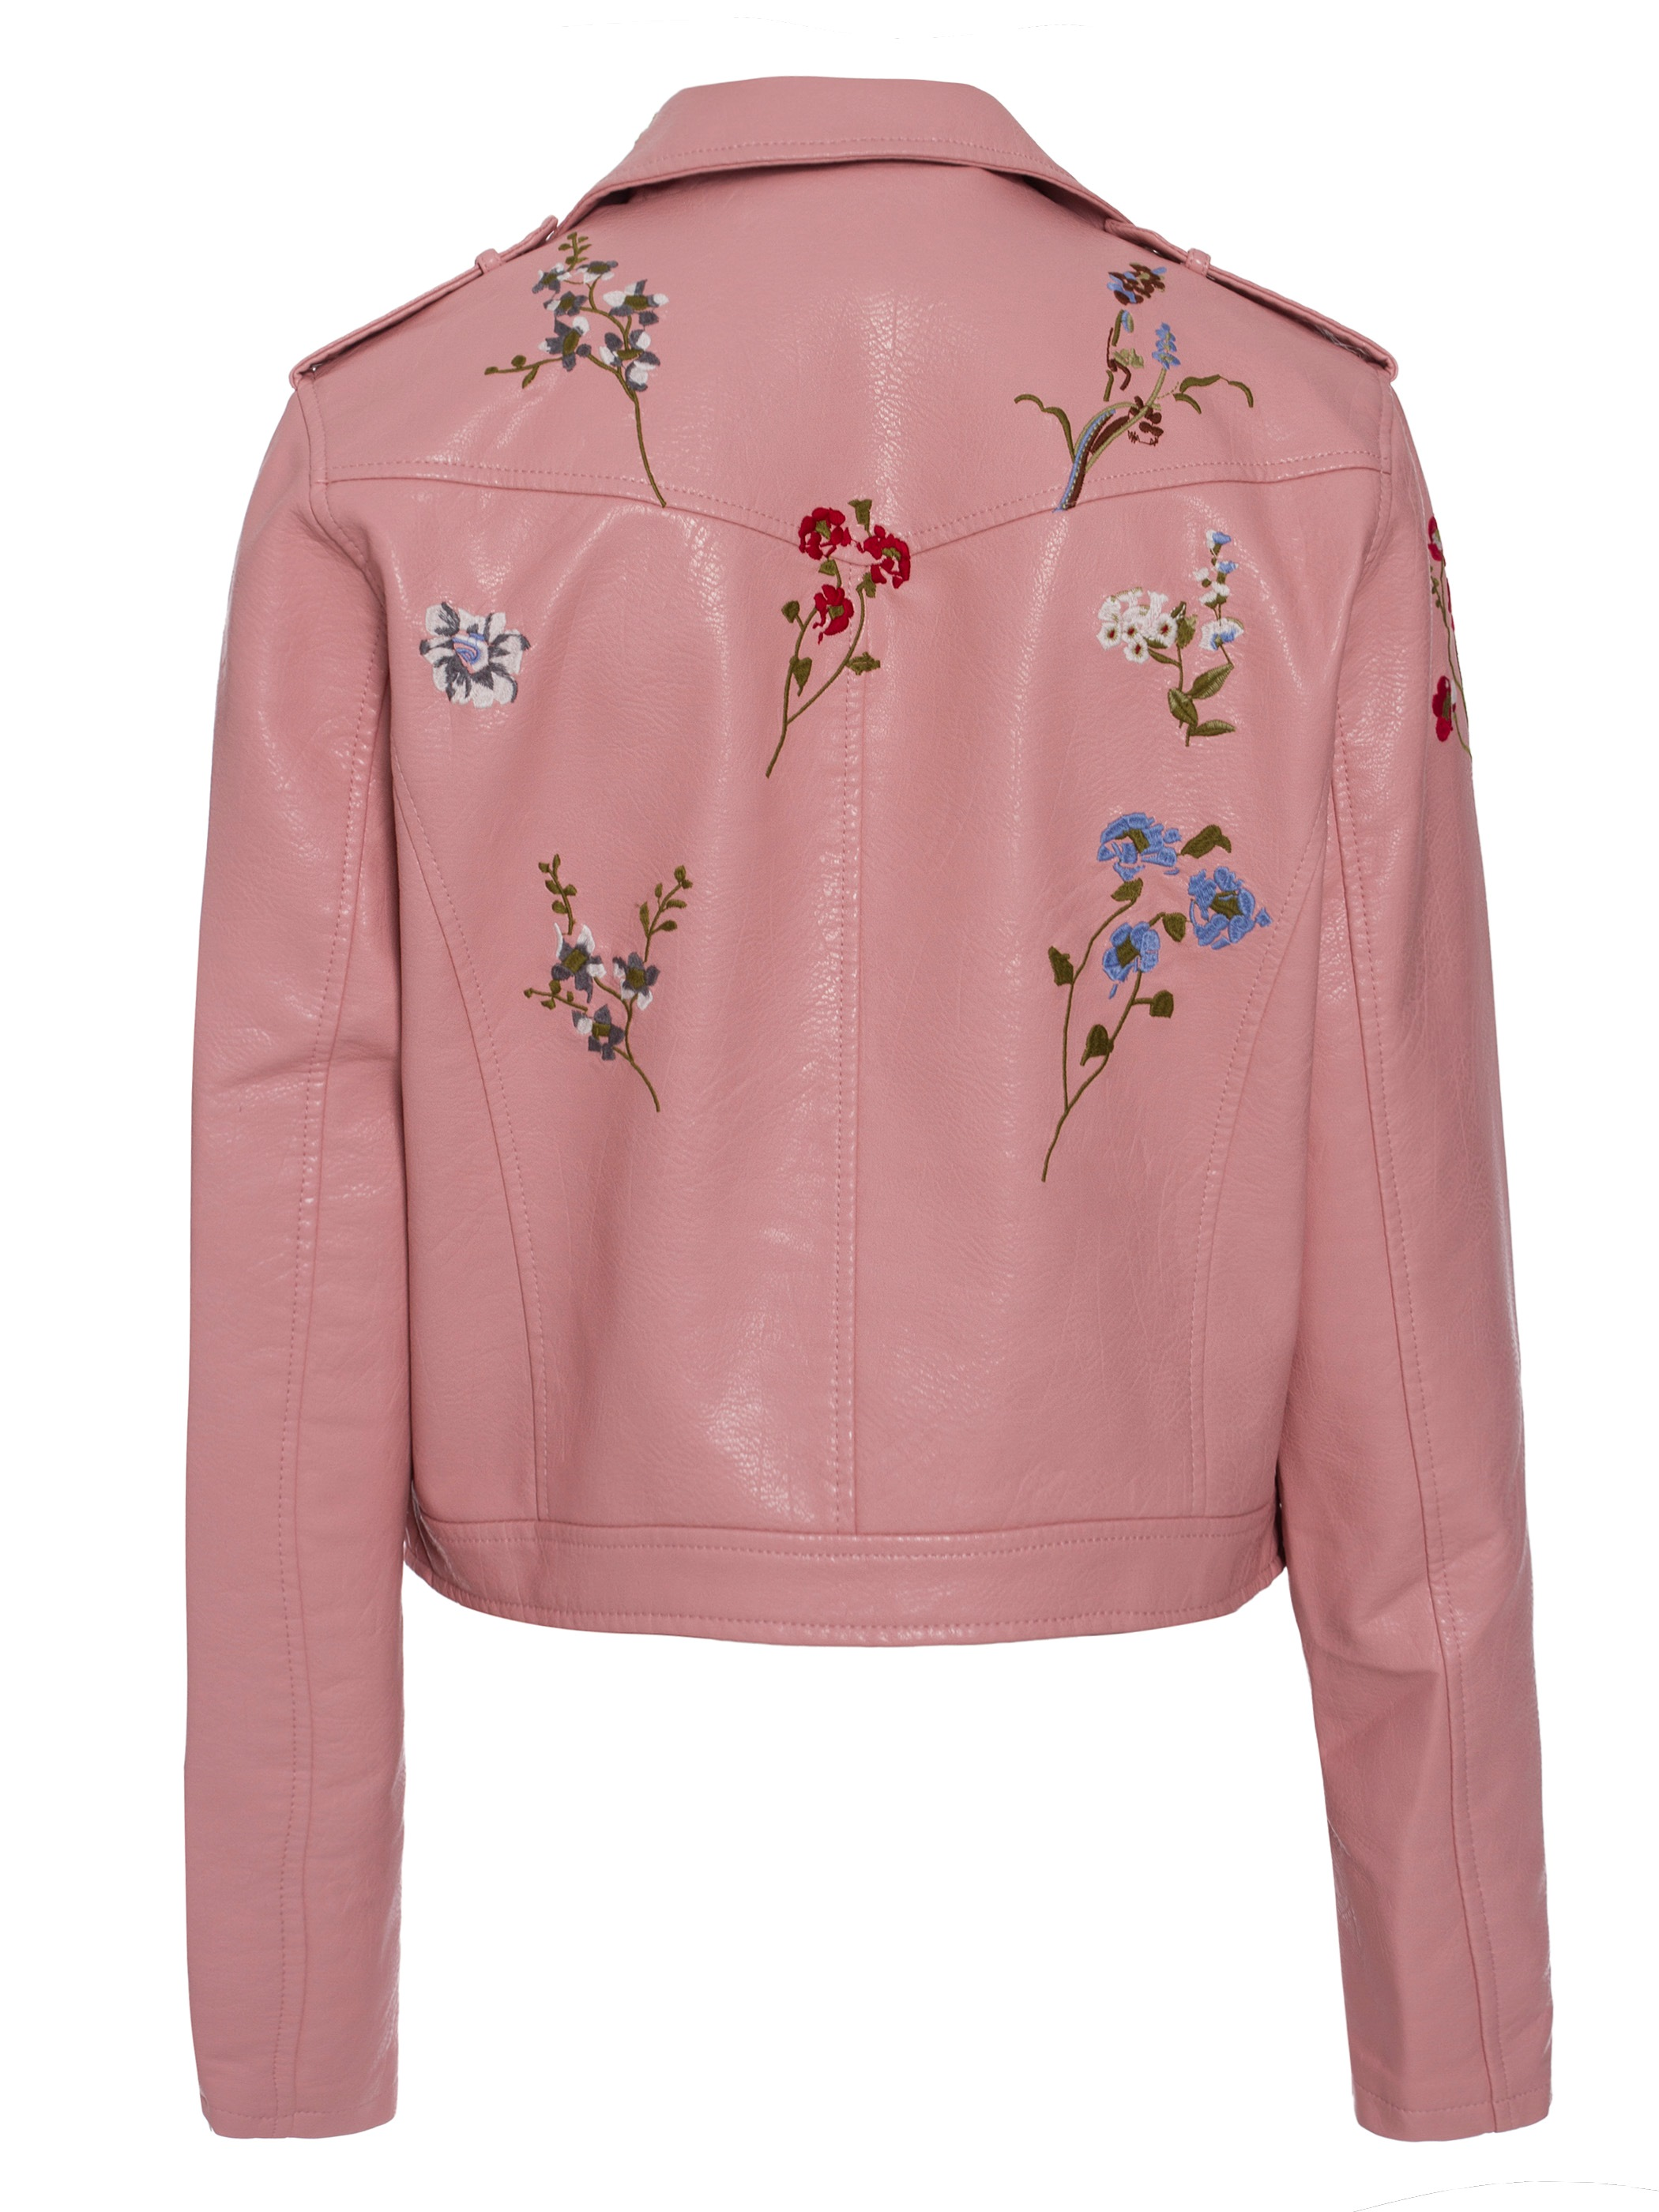 Ericdress Lapel Floral Embroideried PU Jacket